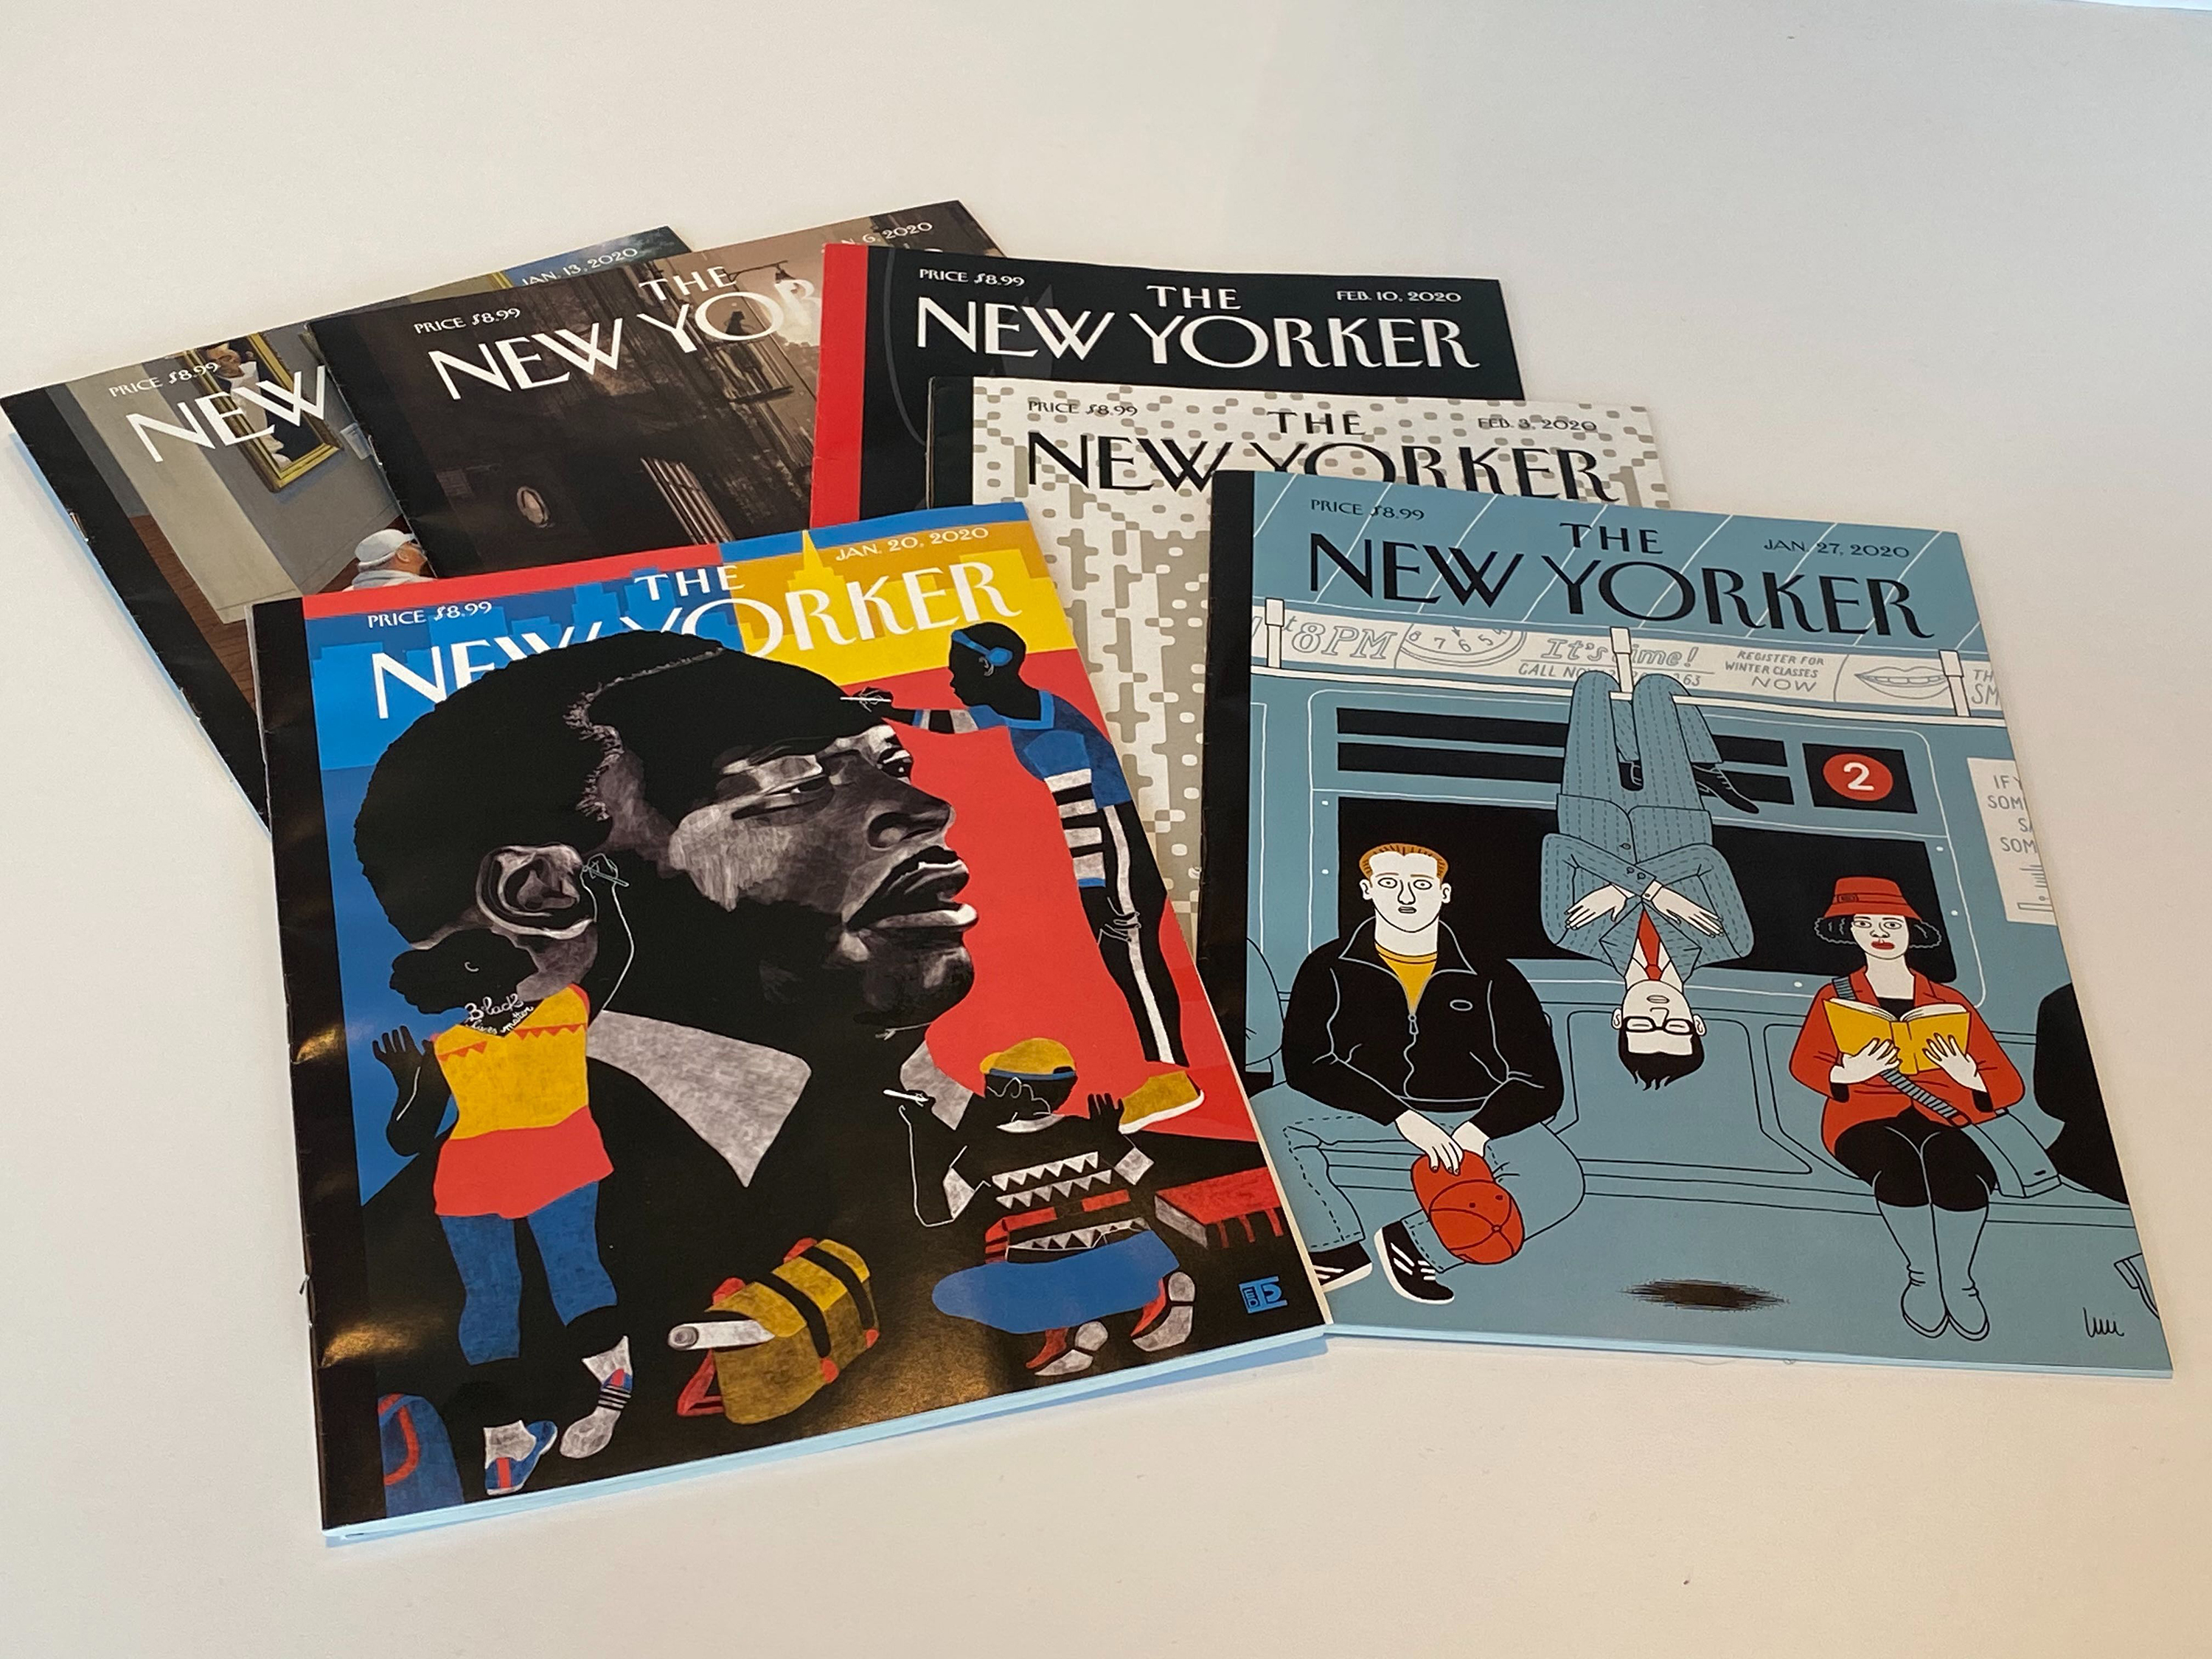 Condé Nast, owner of The New Yorker and other magazines, will stop using NDAs for harassment and discrimination